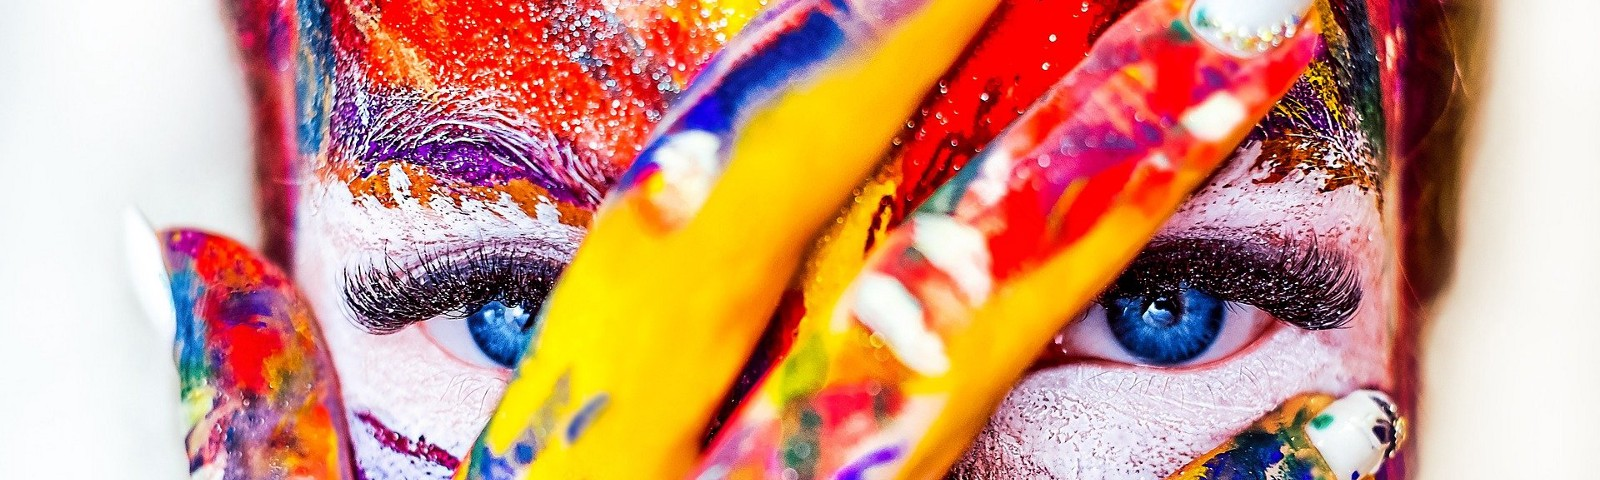 Close up of a face with a hand covering it. The face and hand are covered in red, yellow, and blue paint